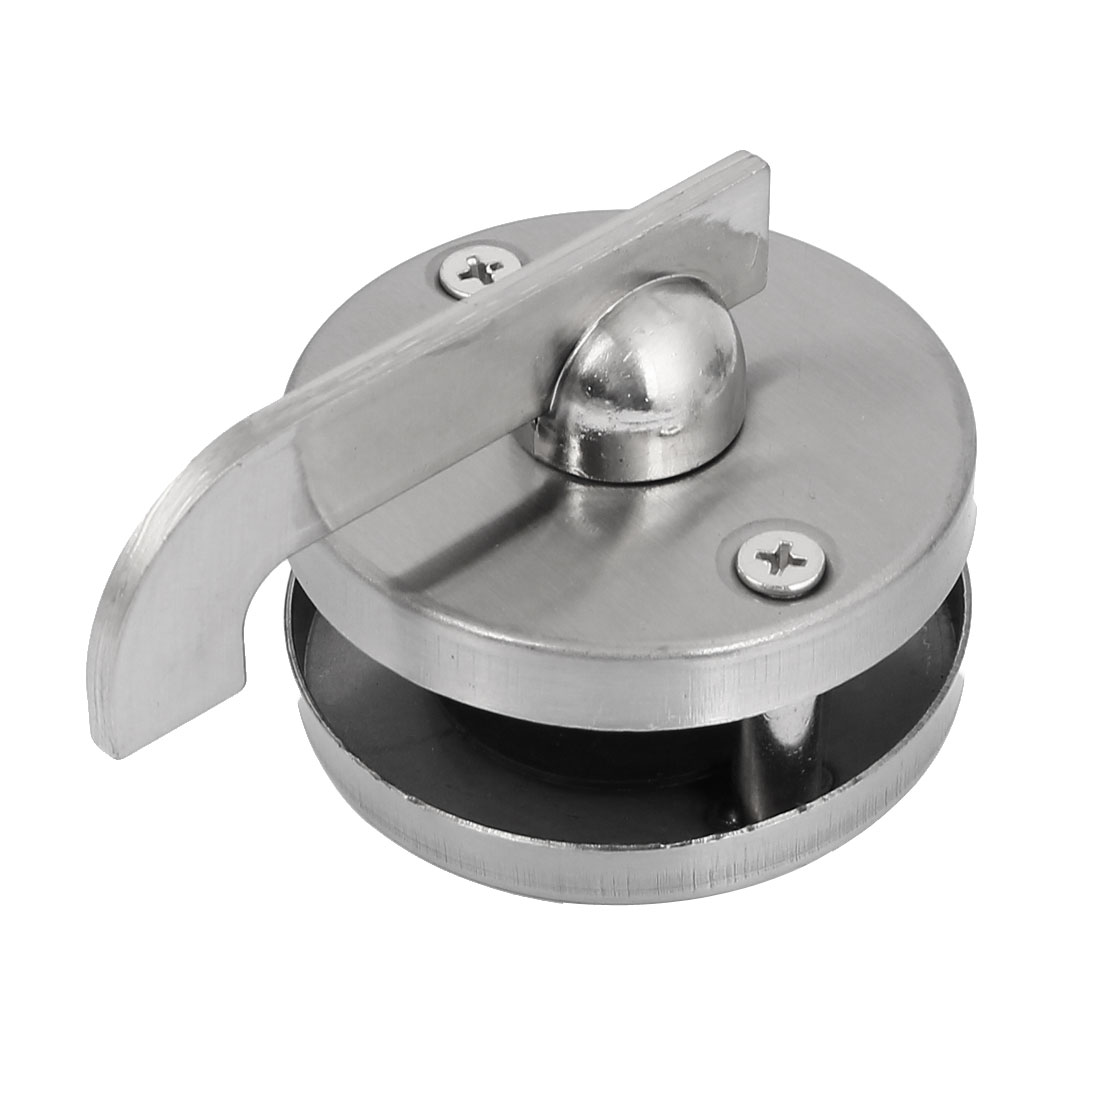 Public Bathroom Toilet Stainless Steel Door Lock Silver Tone